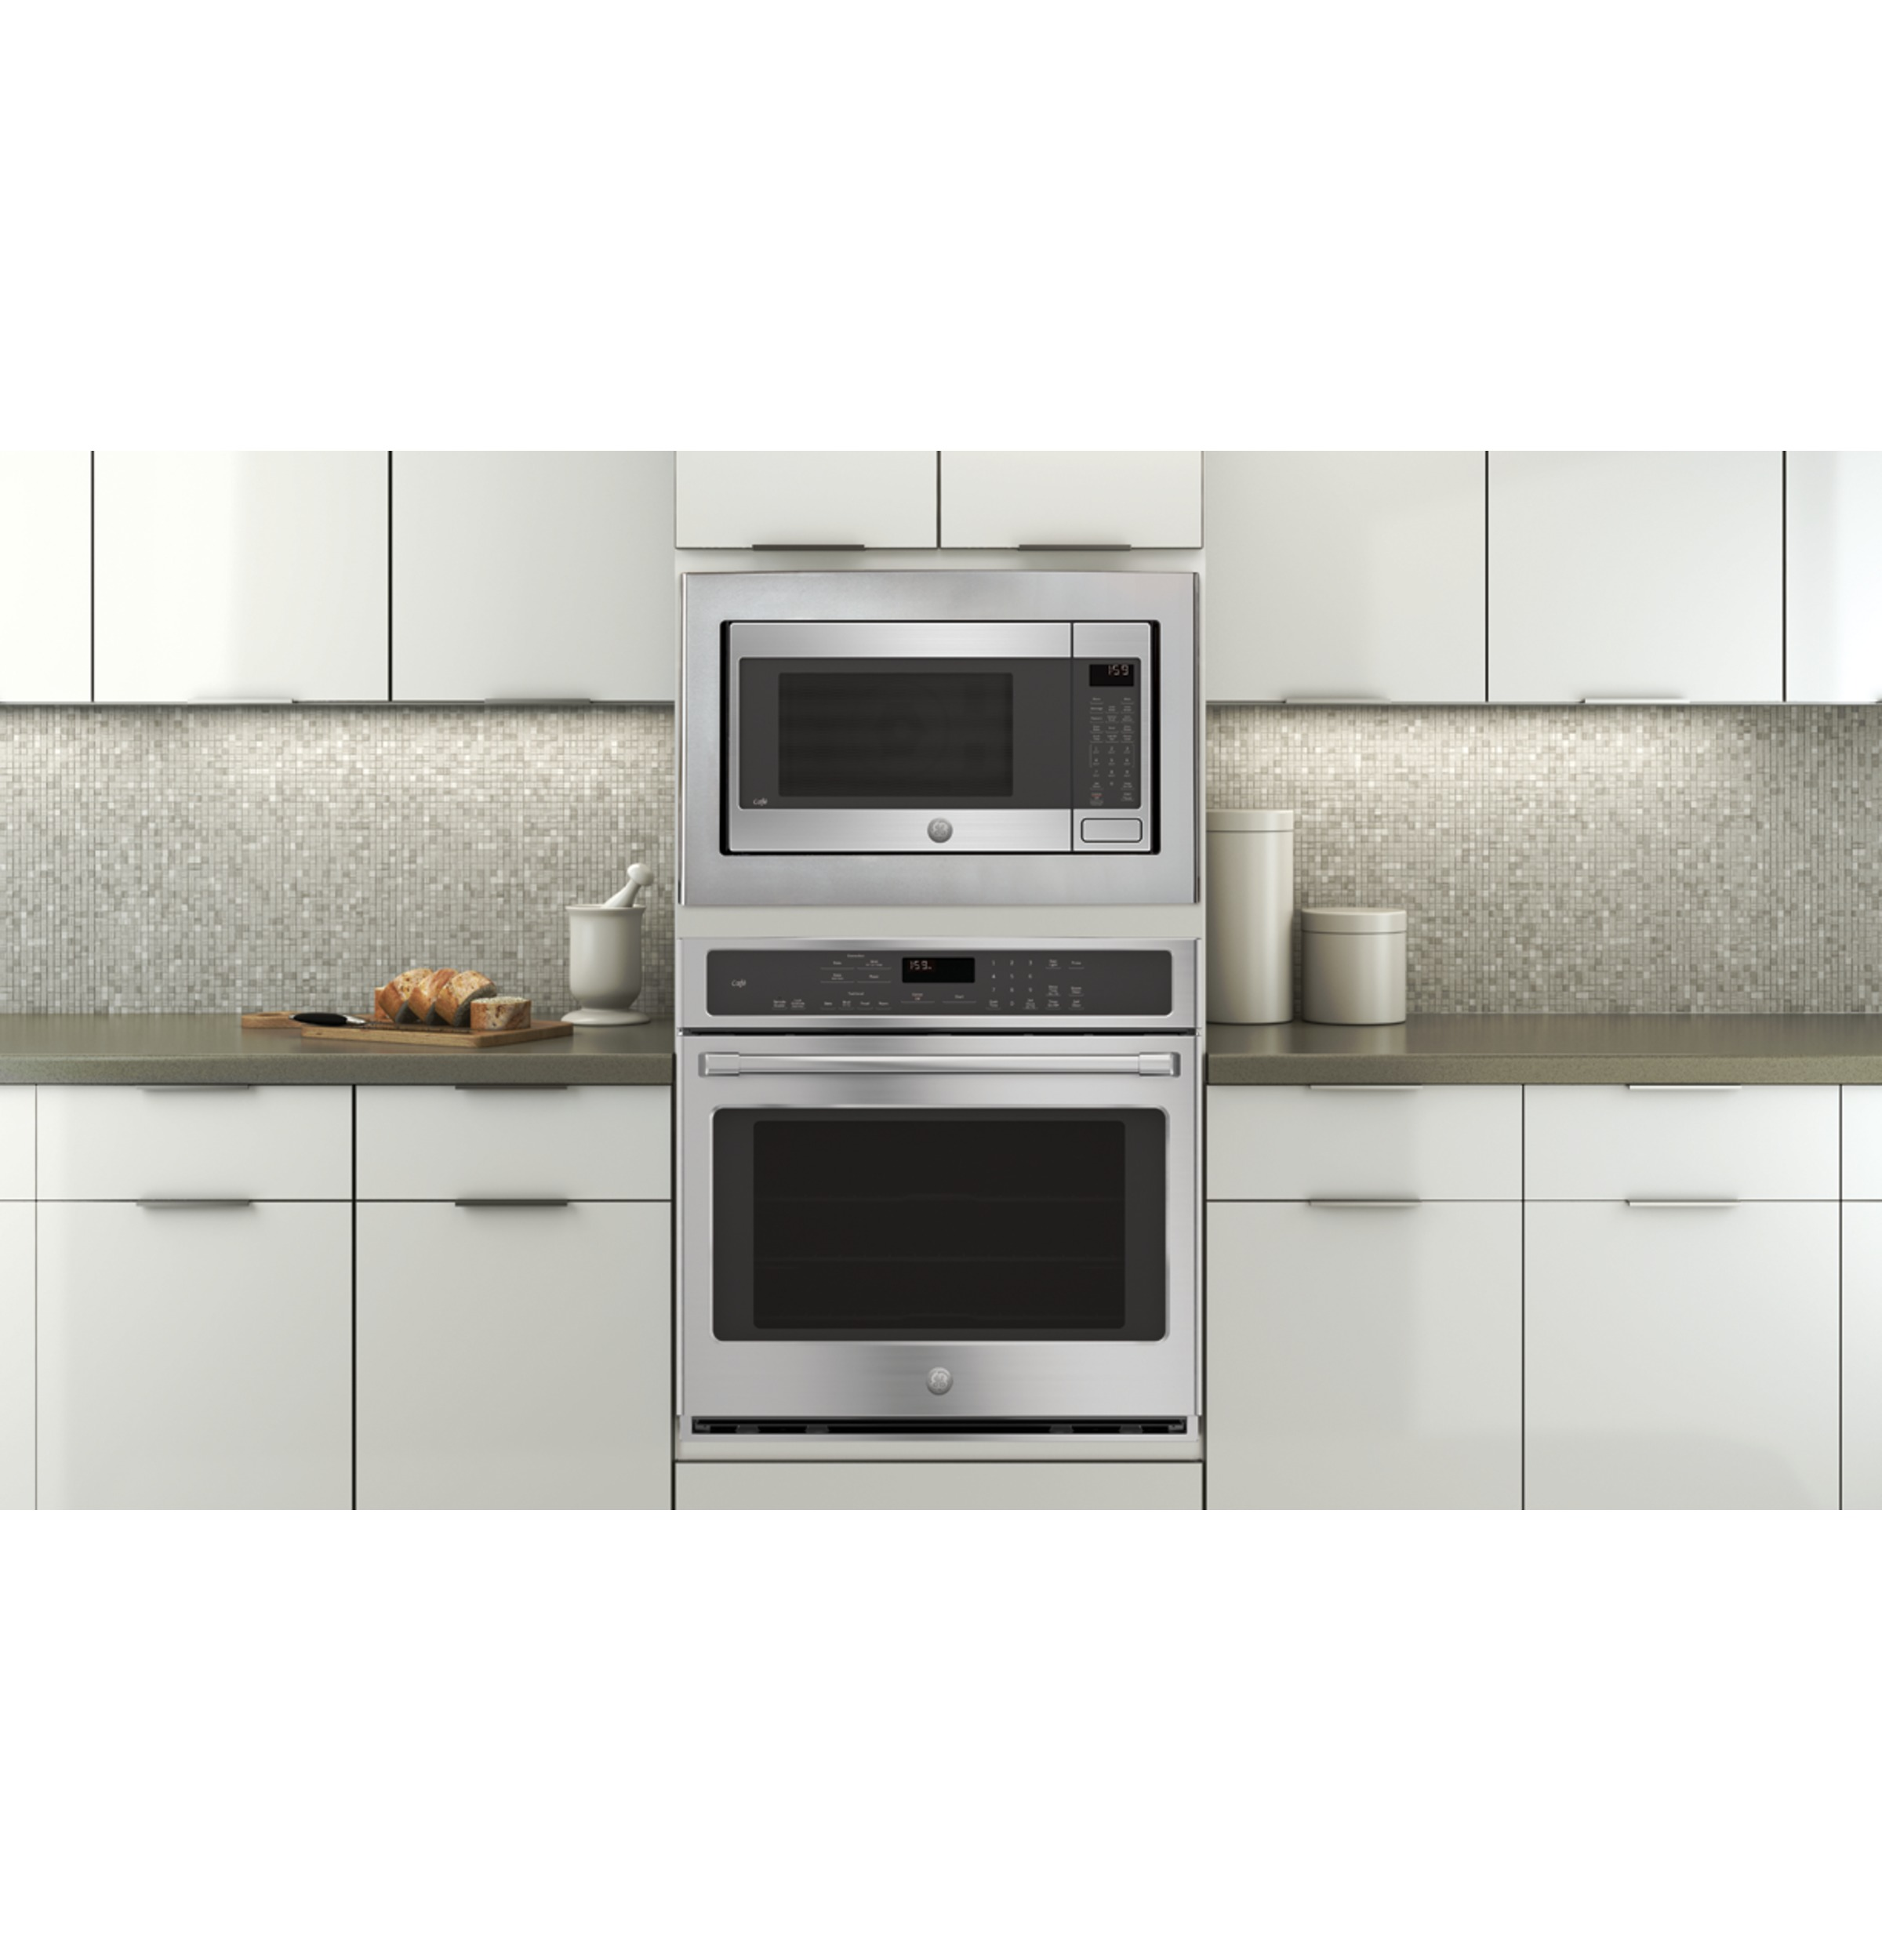 microwave cu reviews oven specs ft name appliance gea ge capacity image countertop product dispatcher requesttype countertops